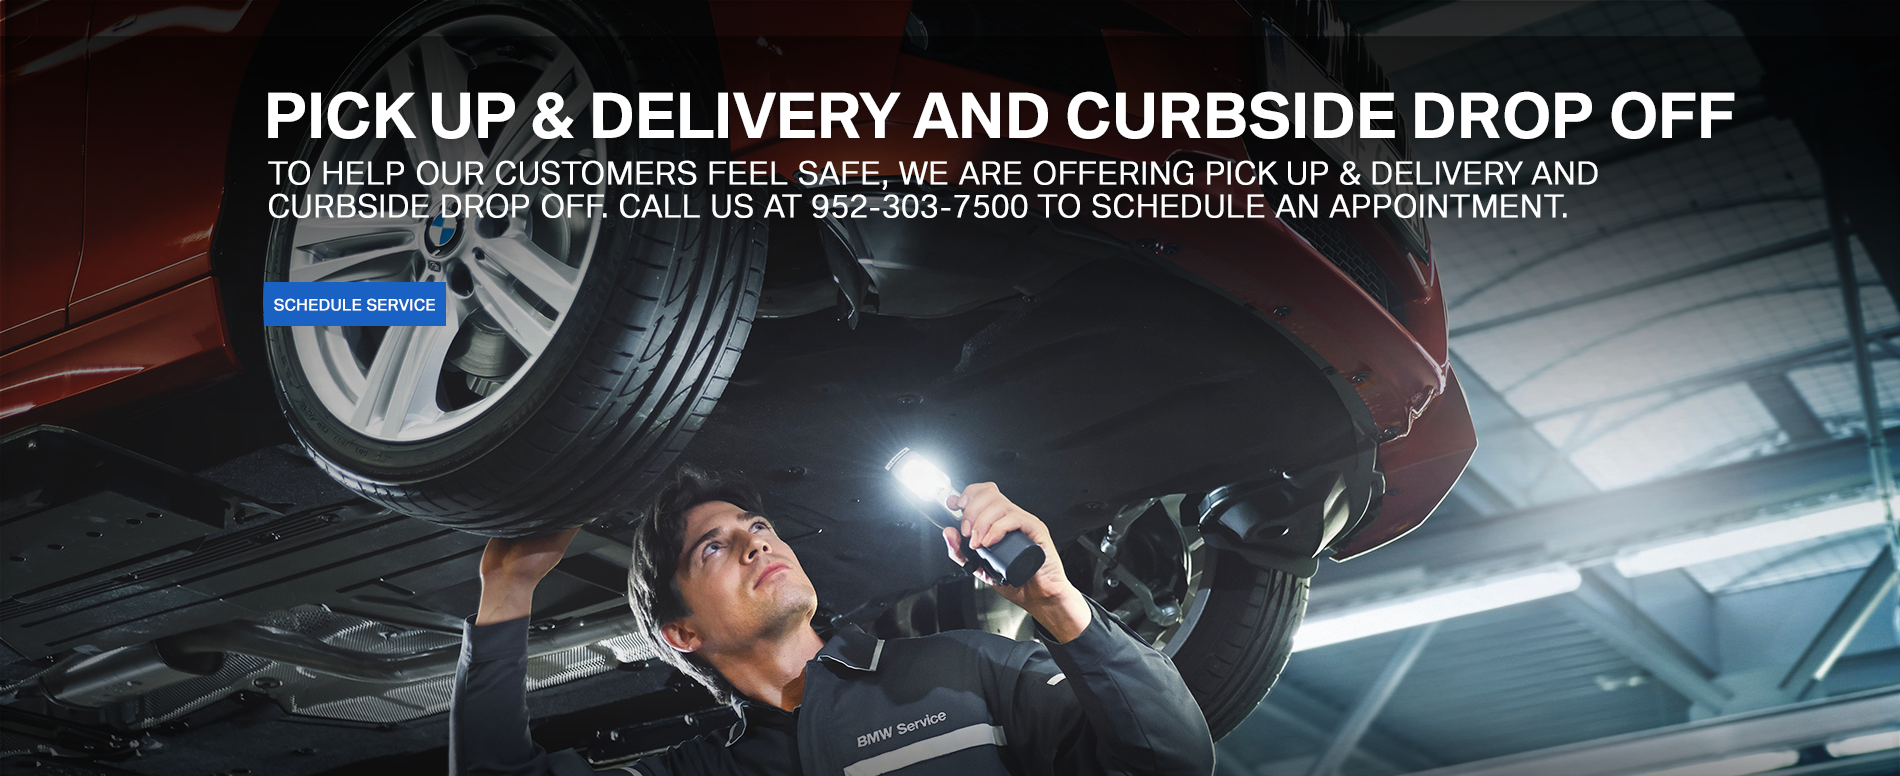 Pick Up & Delivery and Curbside Drop Off